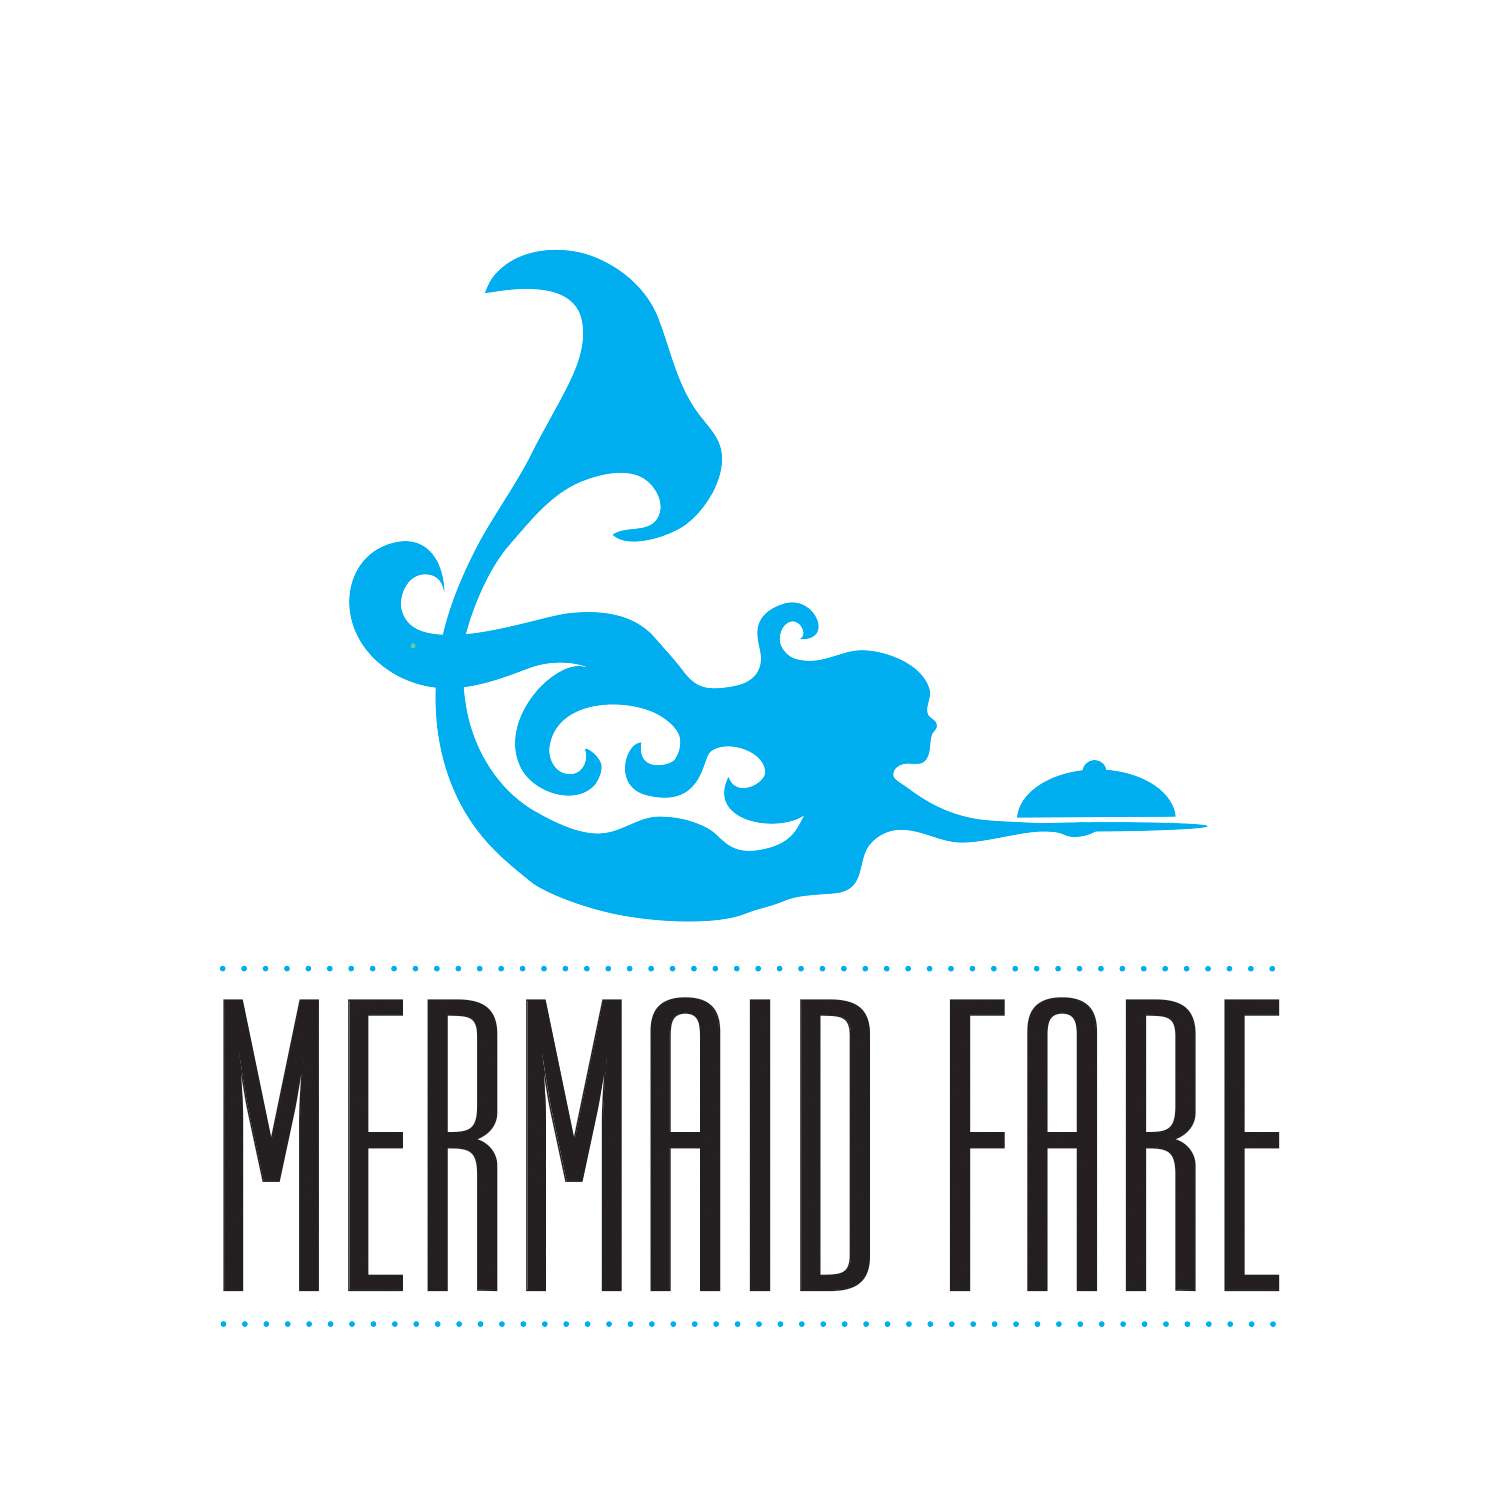 Mermaid Fare Inc.